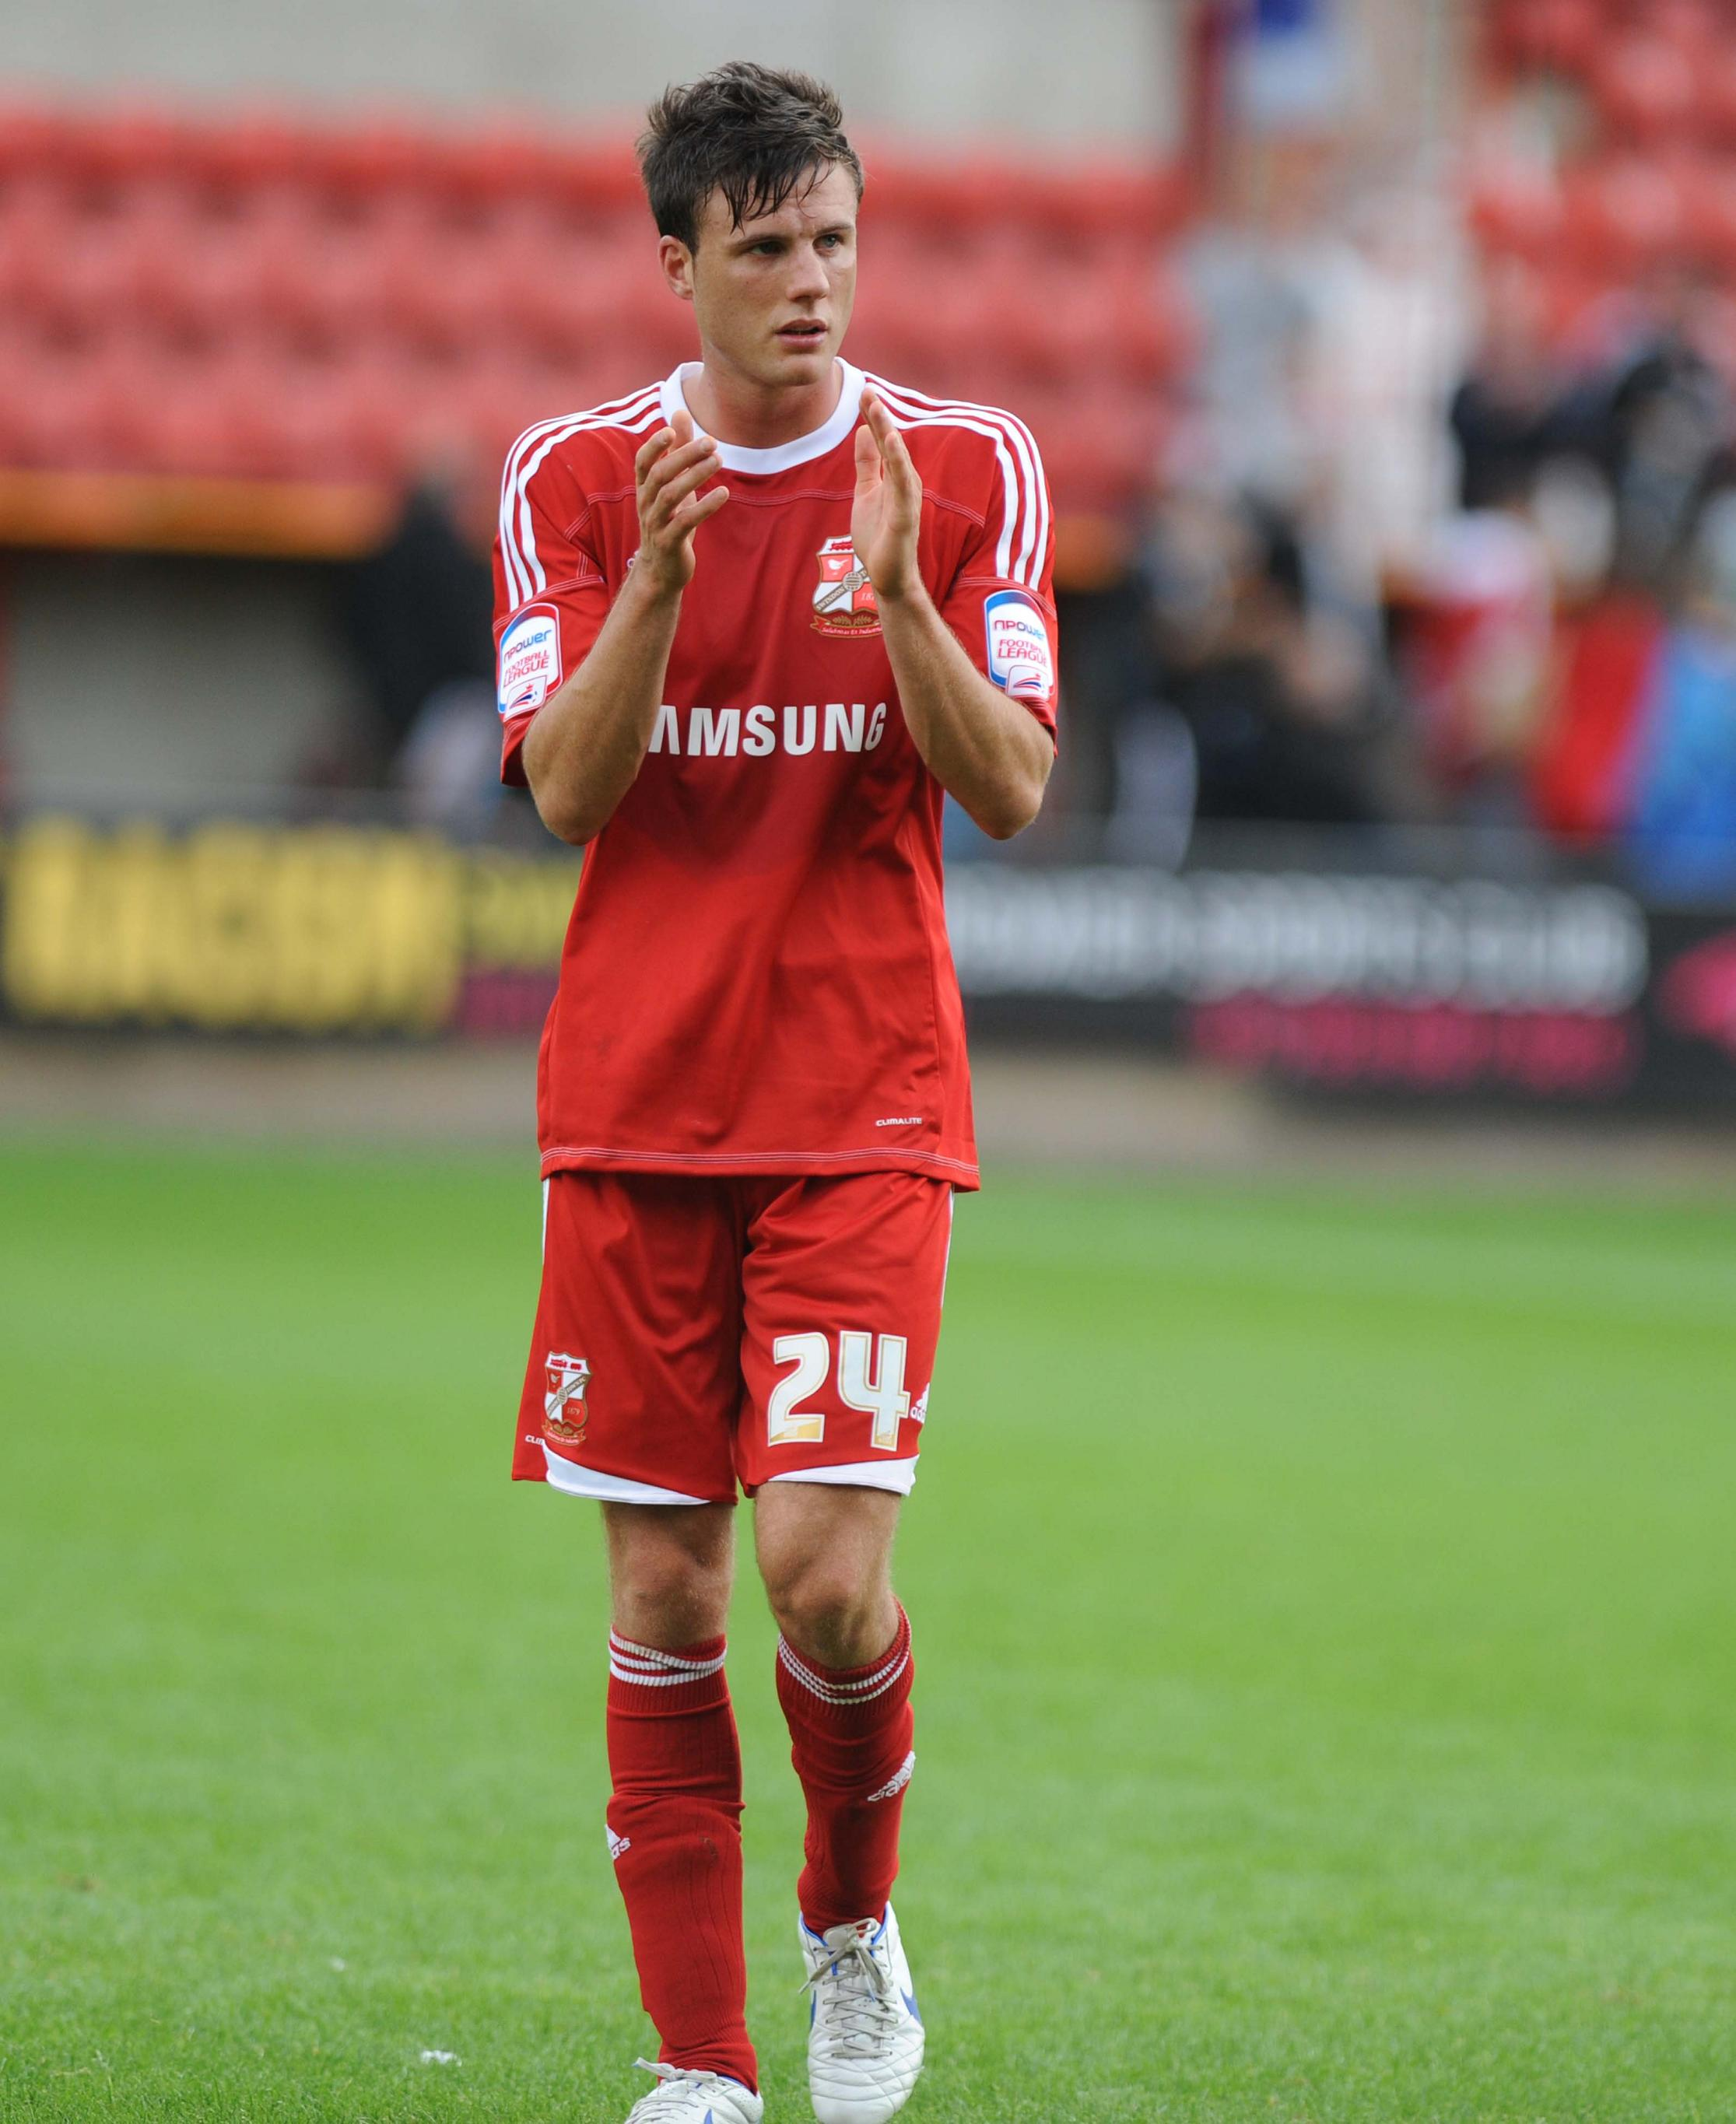 Jonathan Smith was part of the Swindon Town squad that won the League Two title is now at Luton